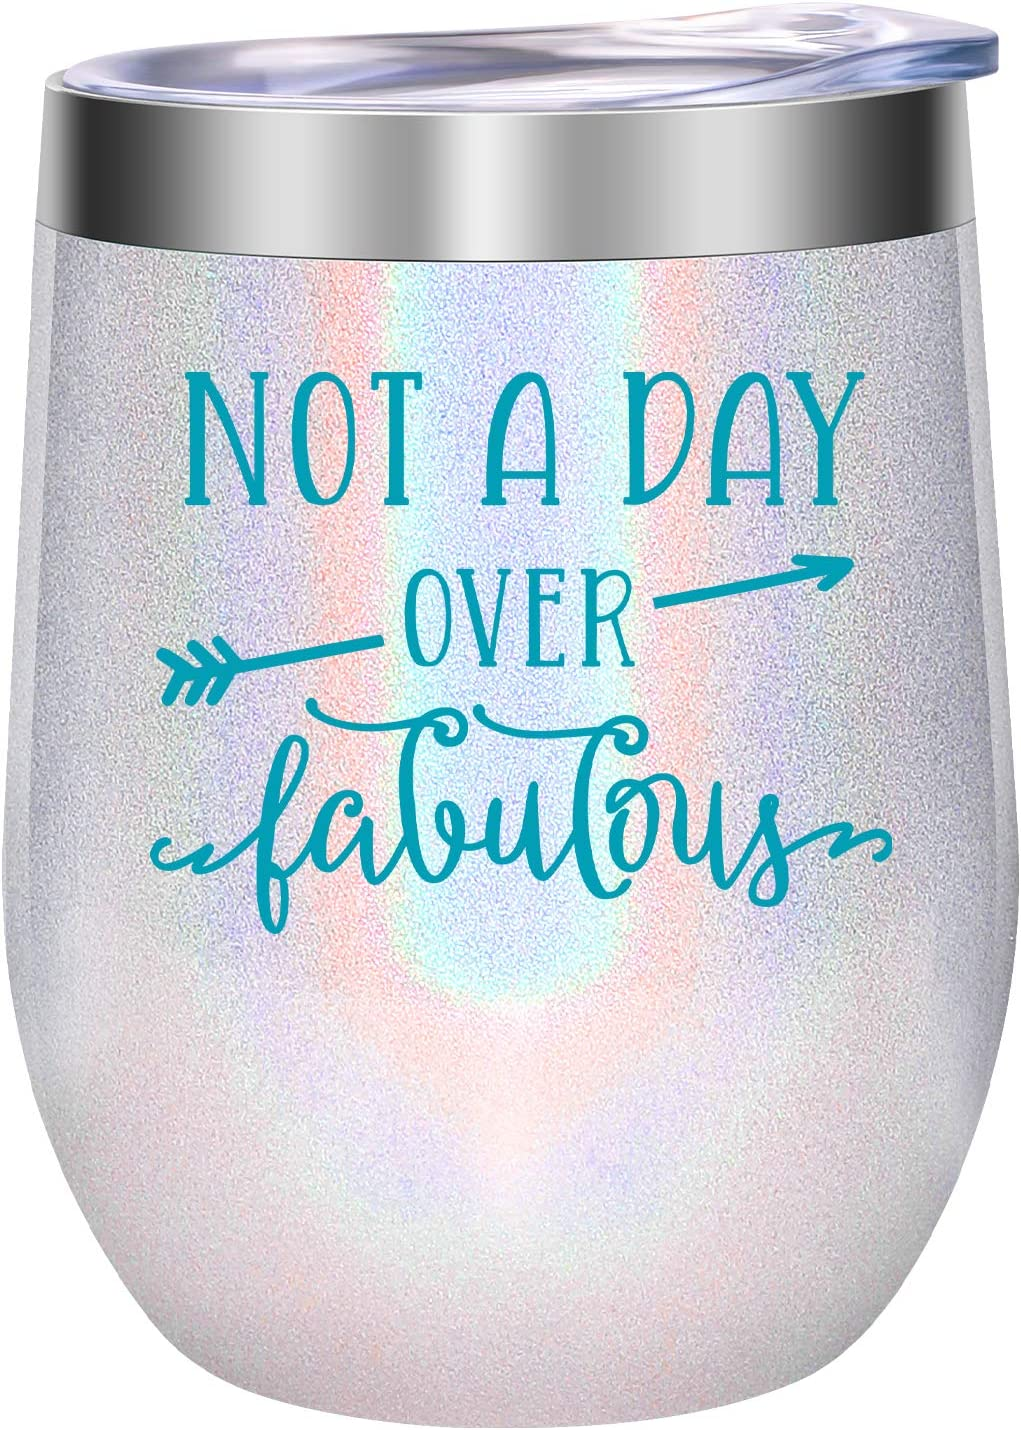 Amazon Com Birthday Gifts For Women Friends Female Funny Christmas Birthday Wine Gifts Ideas For Her Best Friend Mom Daughter Grandma Sister Aunt Coworker Leado Not A Day Over Fabulous Wine